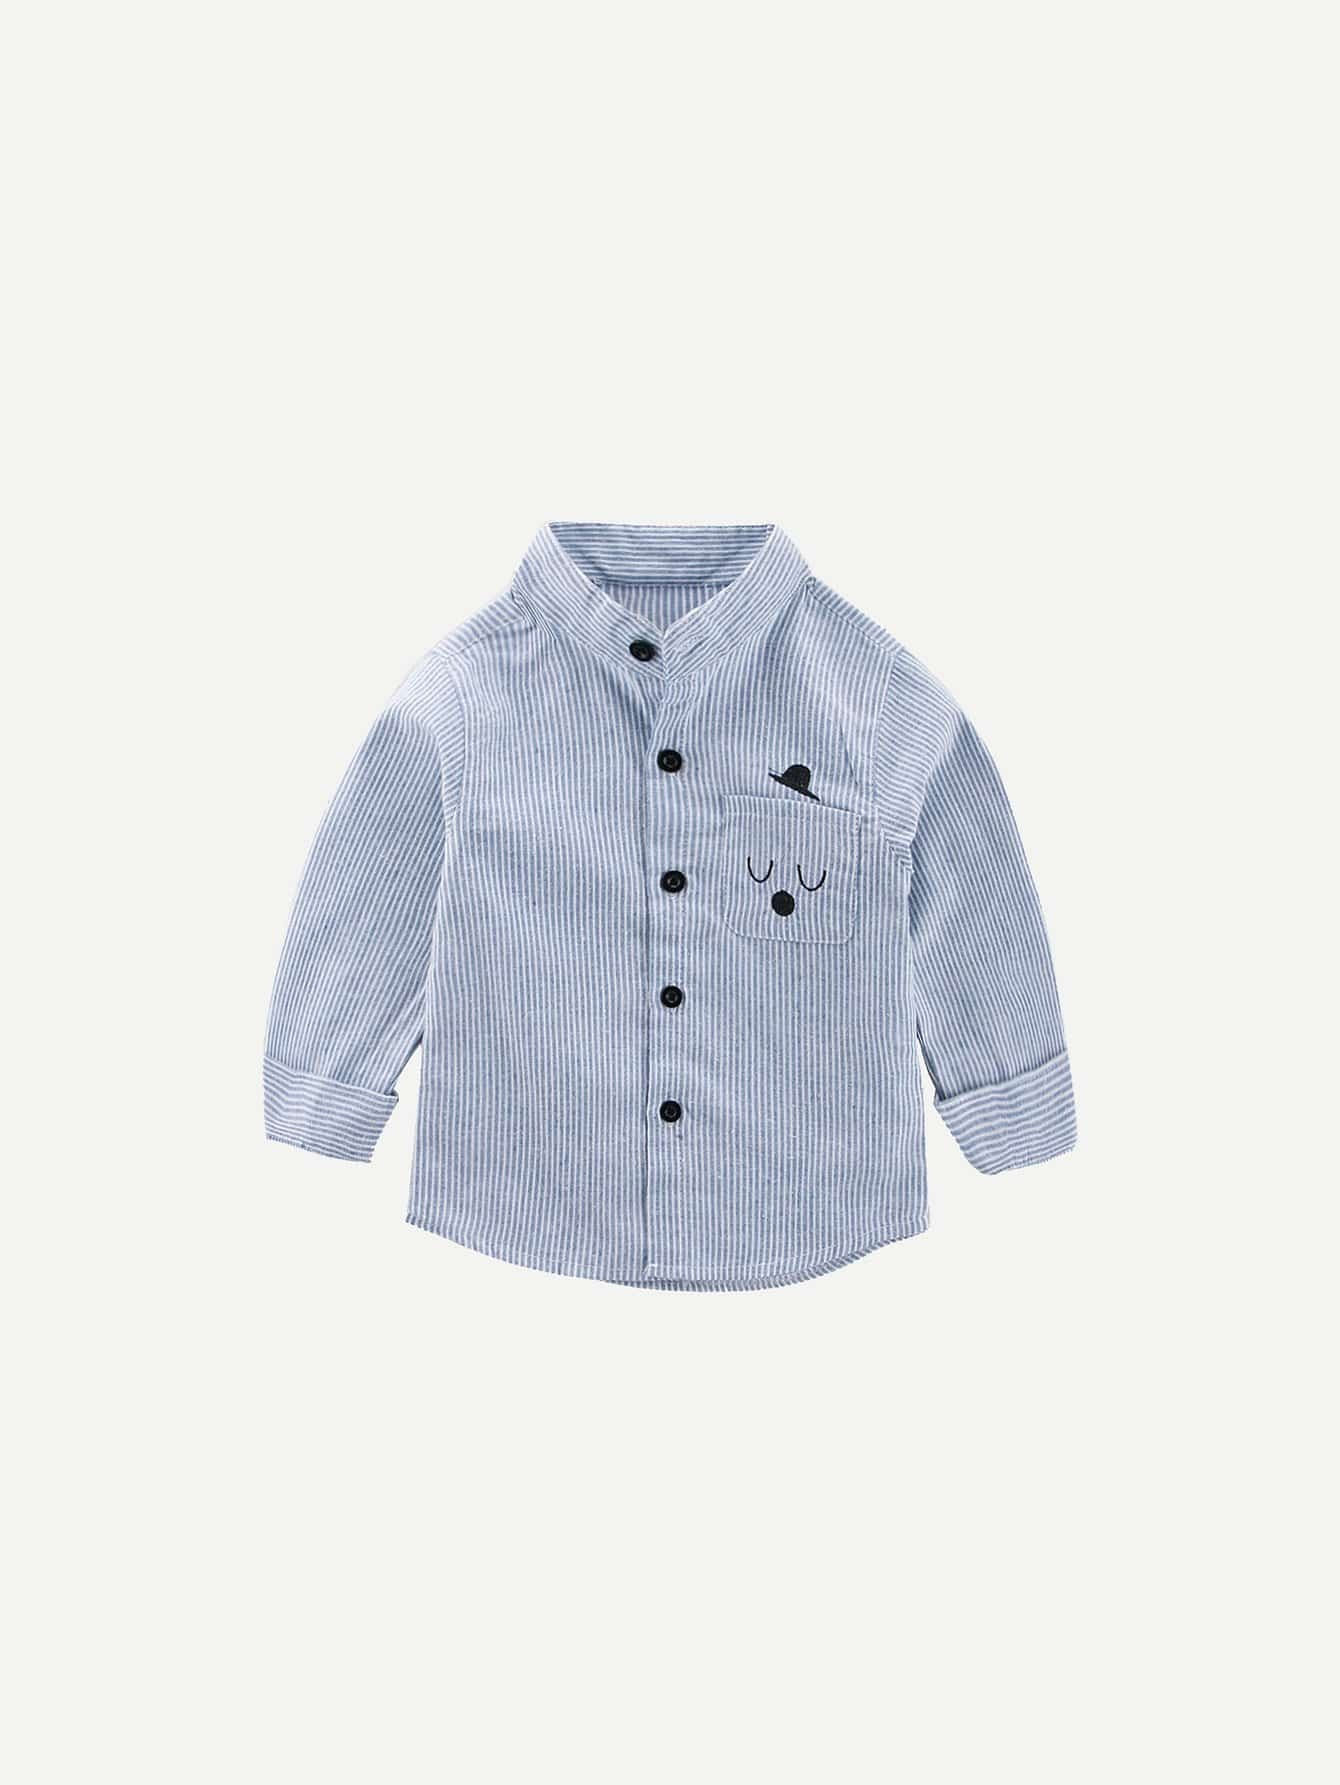 Boys Embroidery Detail Striped Shirt